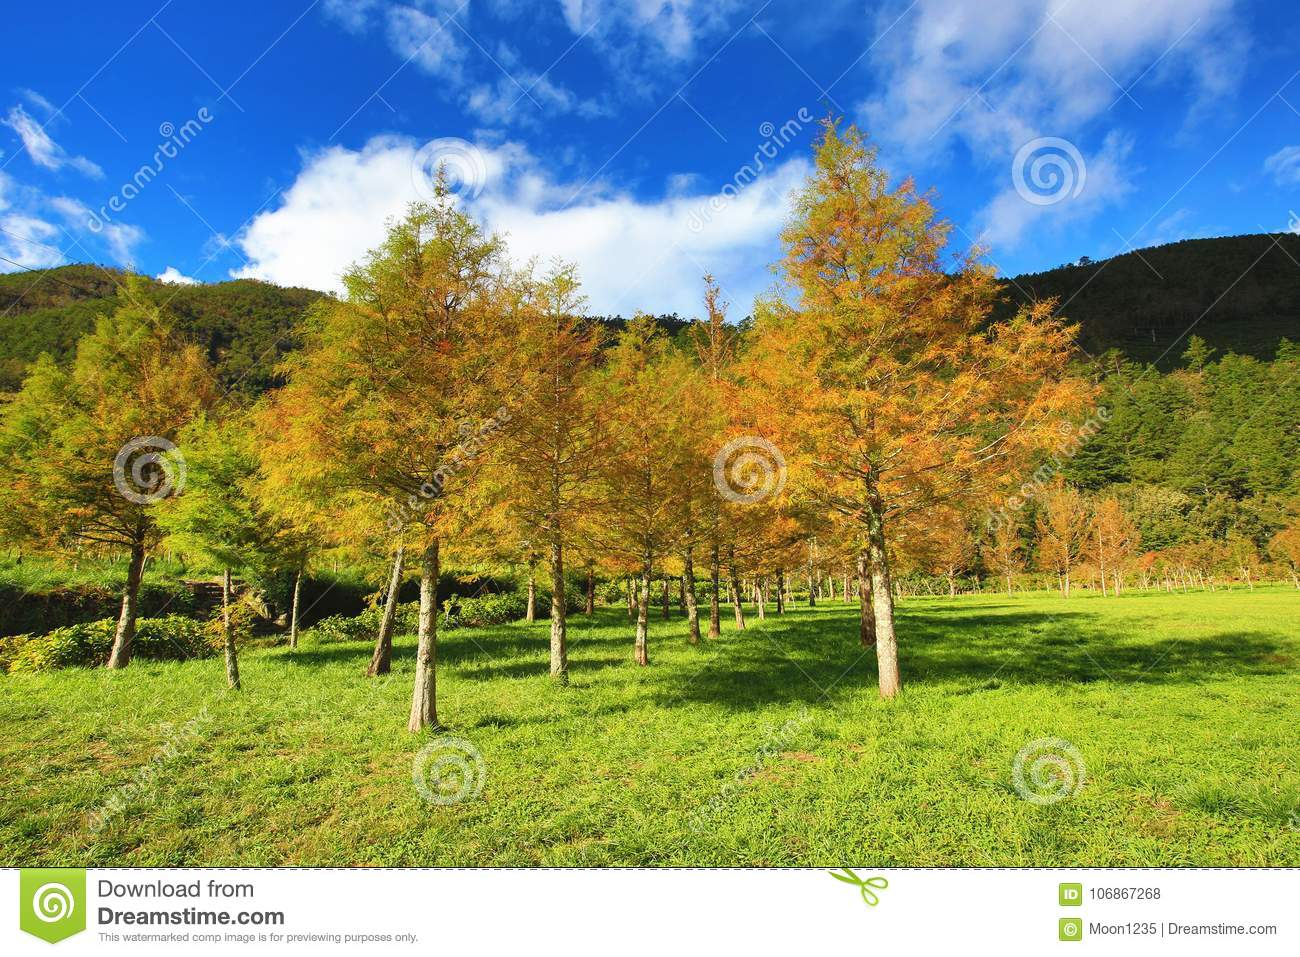 Bald cypress trees stock photo. Image of forest, beautiful - 106867268